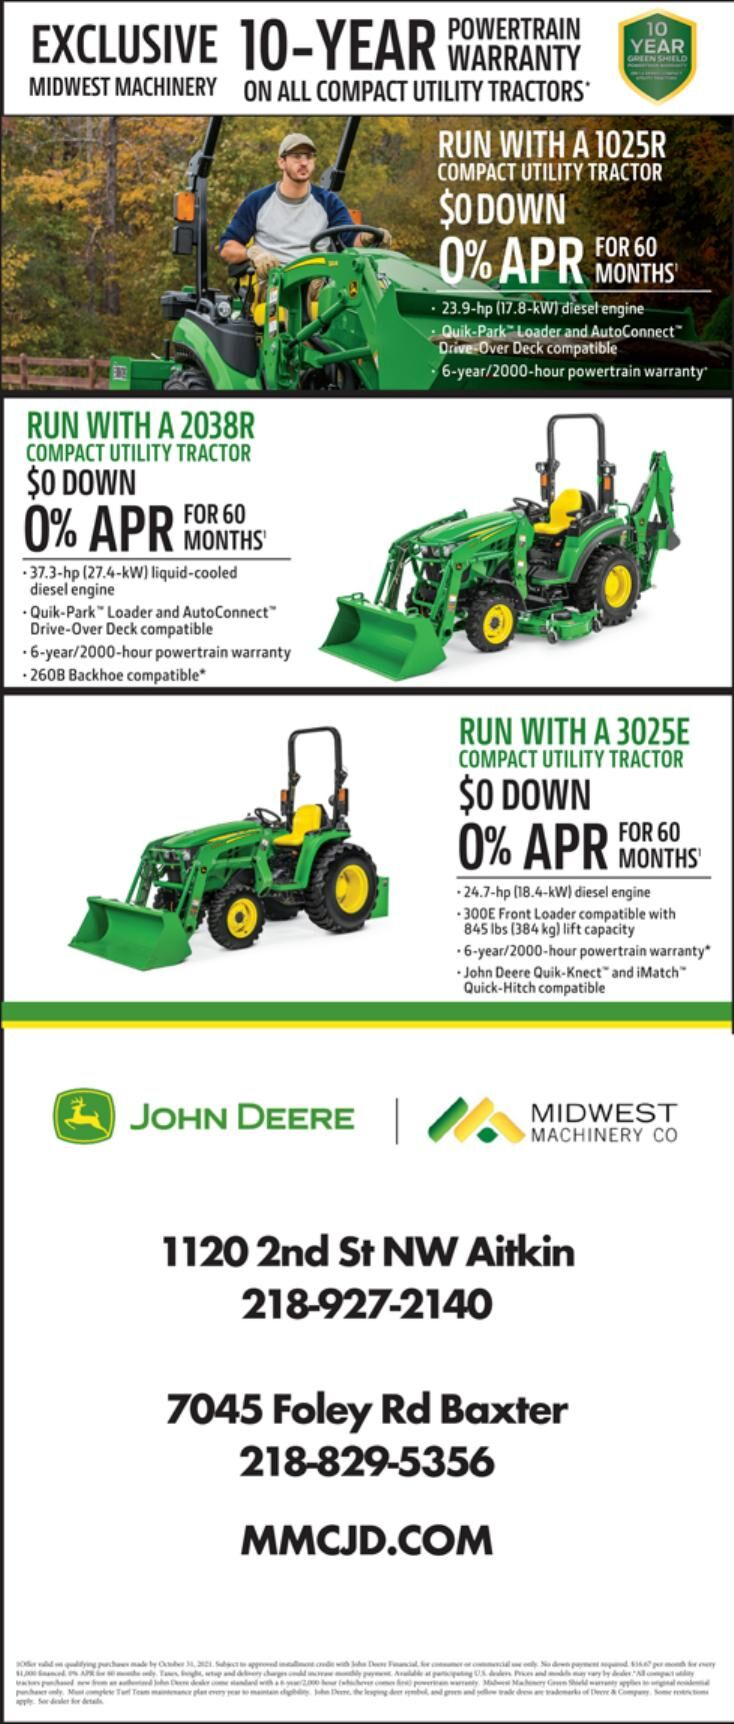 Midwest Machinery 9-4-21